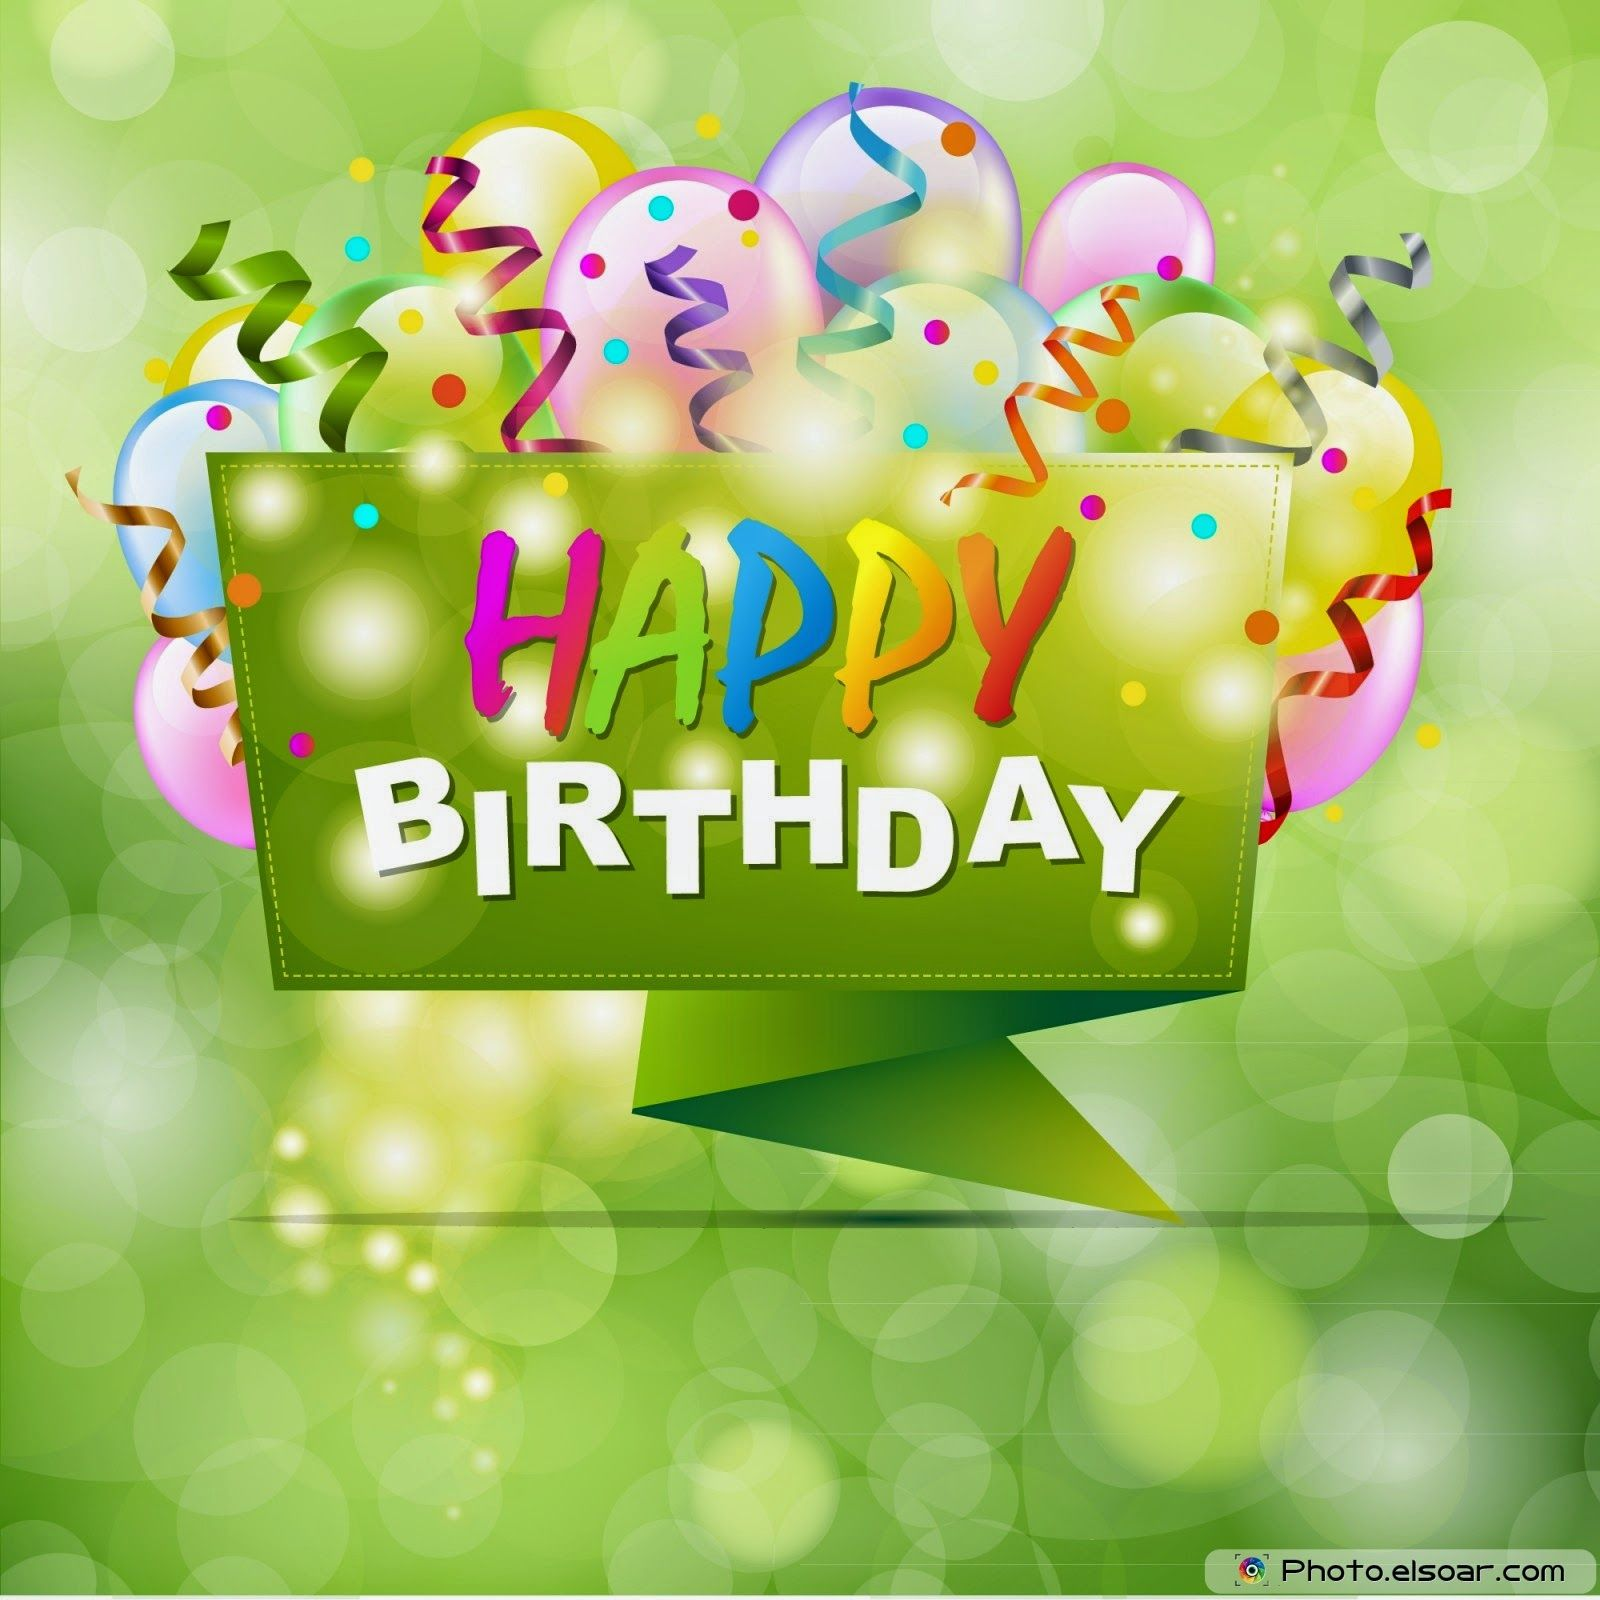 Happy Birthday Quotes Pictures Images Free Download – Free Textable Birthday Cards